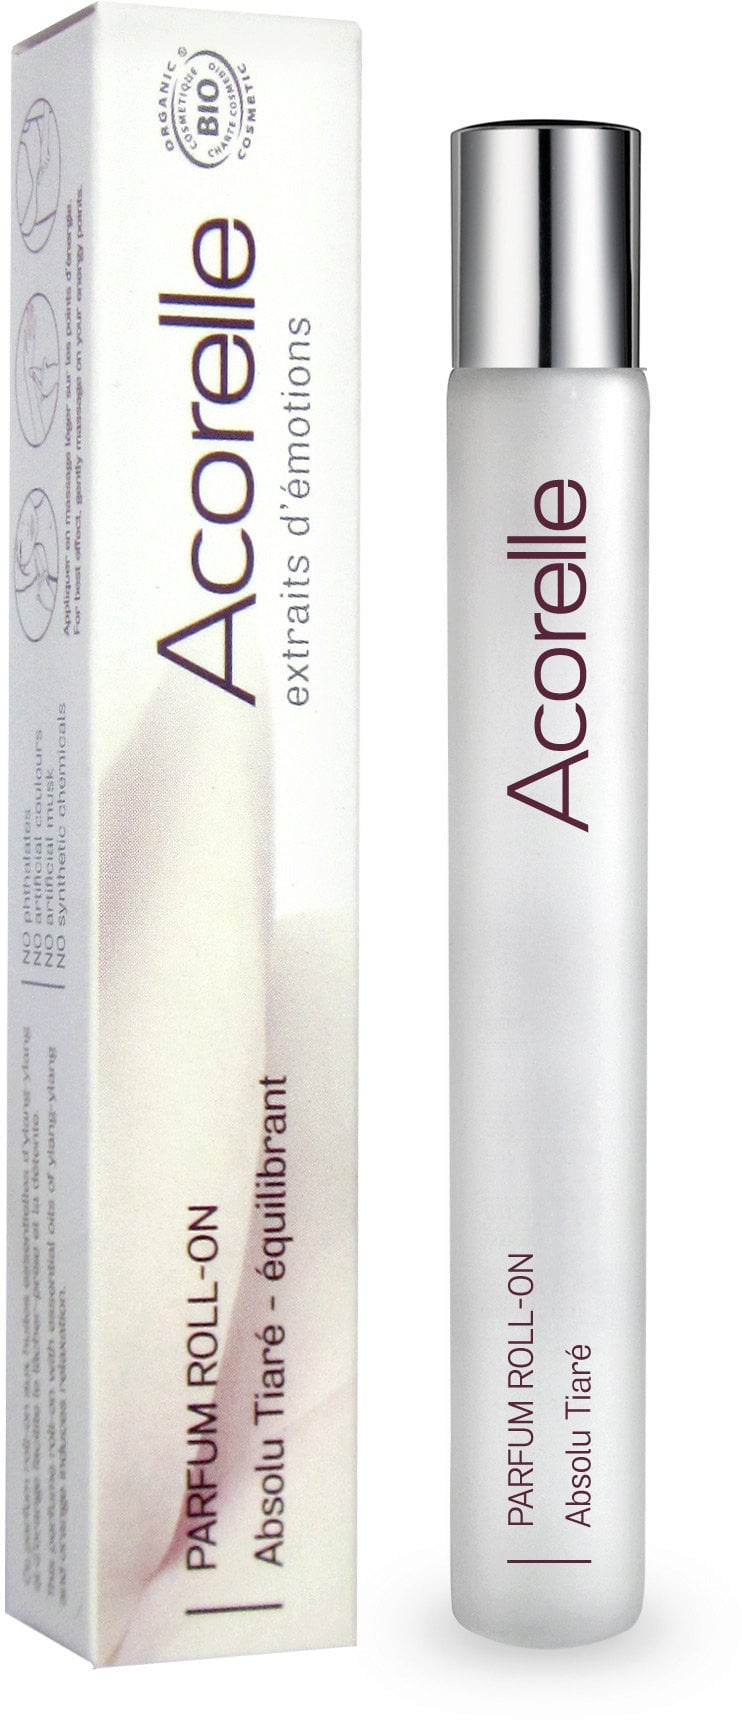 ACORELLE EDP Roll-on Absolu Tiare